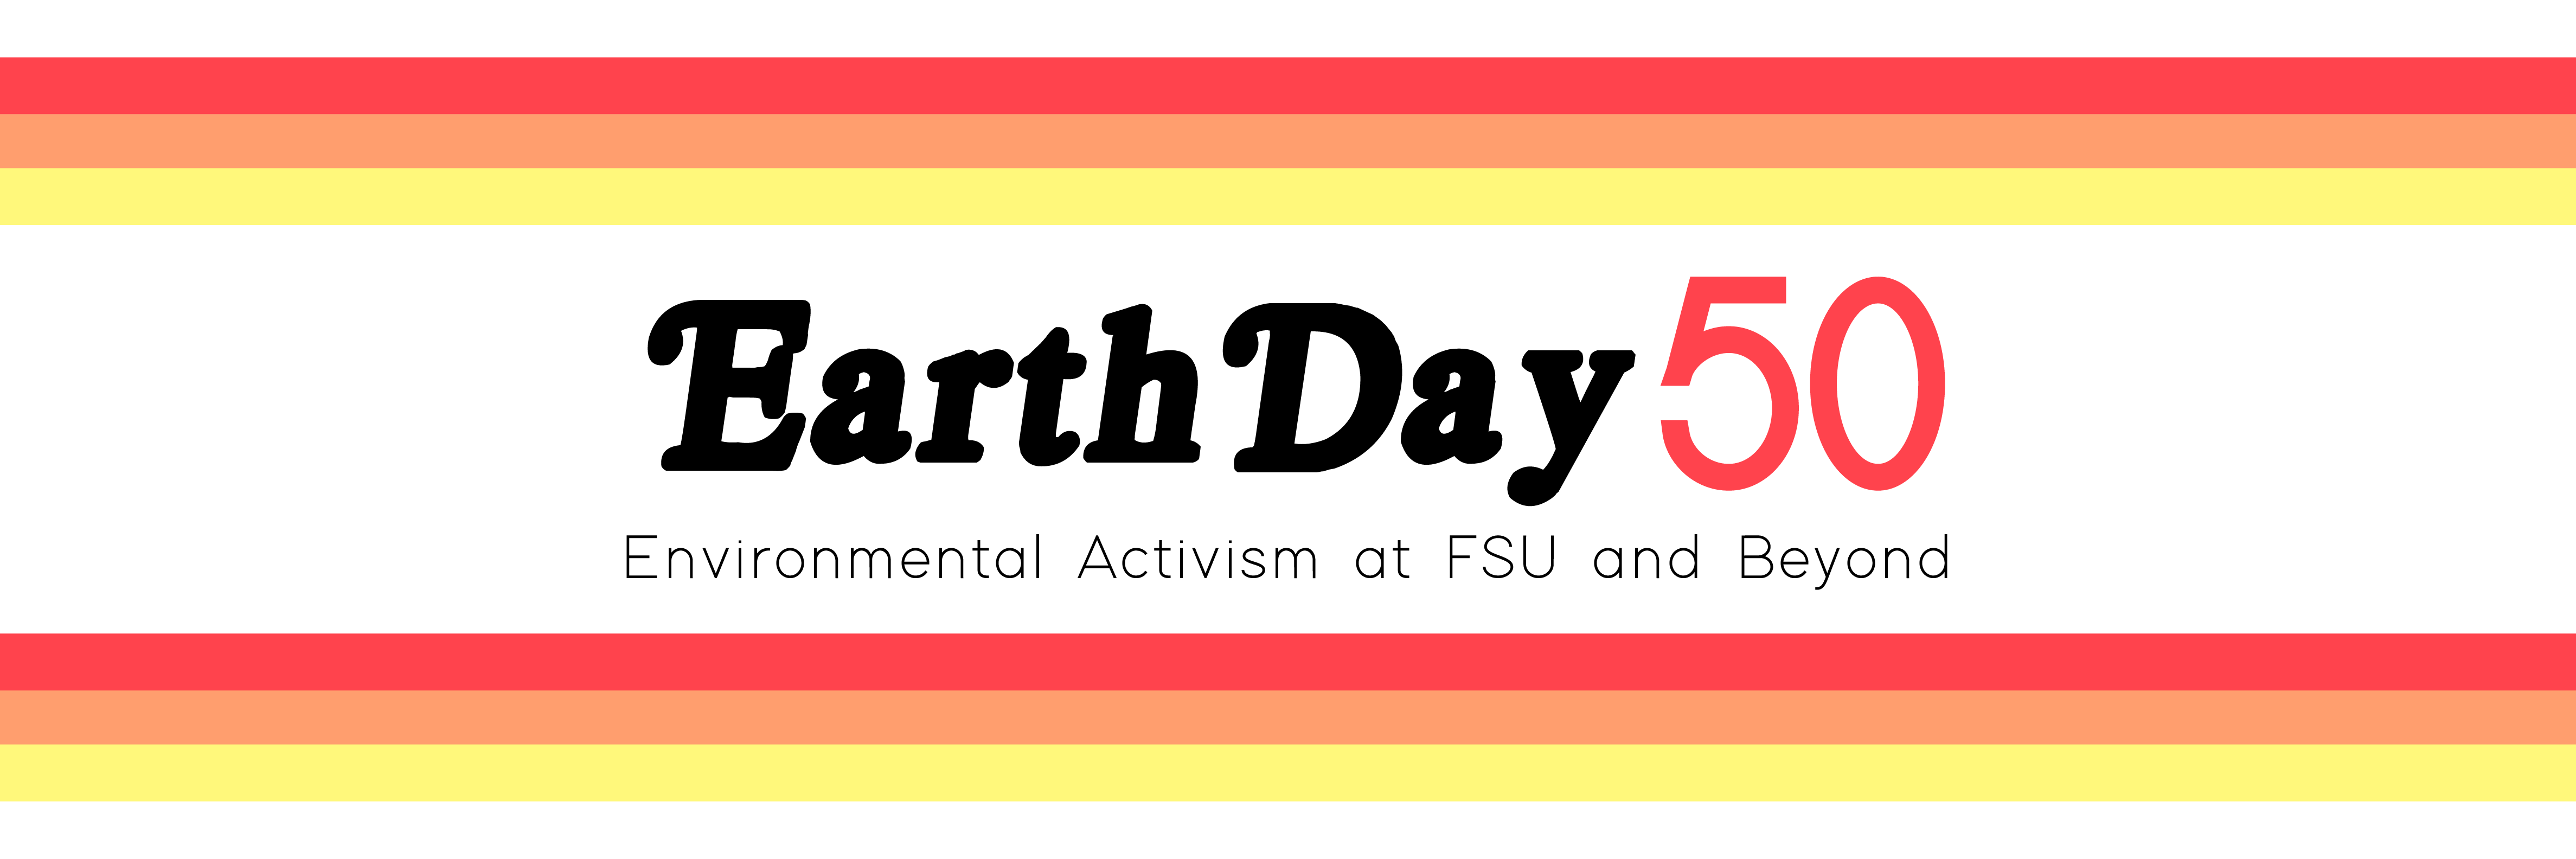 Earth Day 50: Environmental Activism at FSU and Beyond